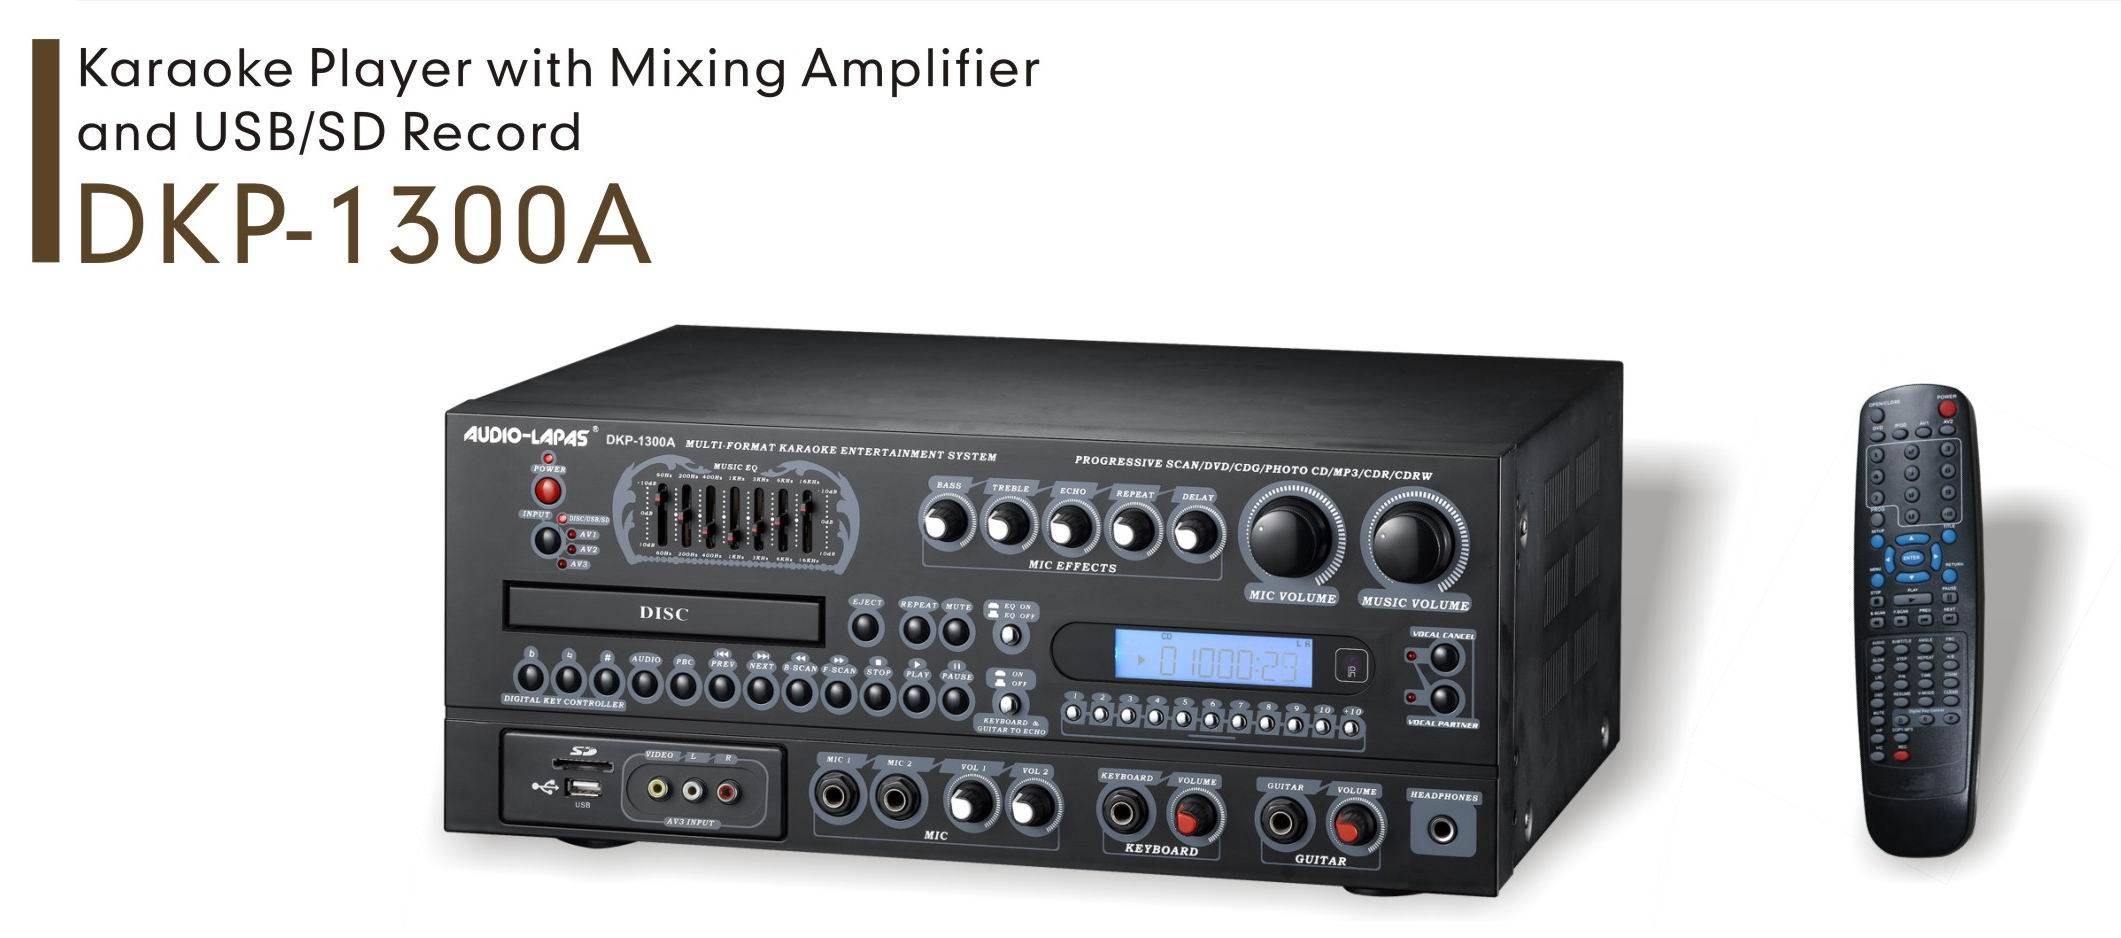 Karaoke player with mixing amplfier and USB/SD record